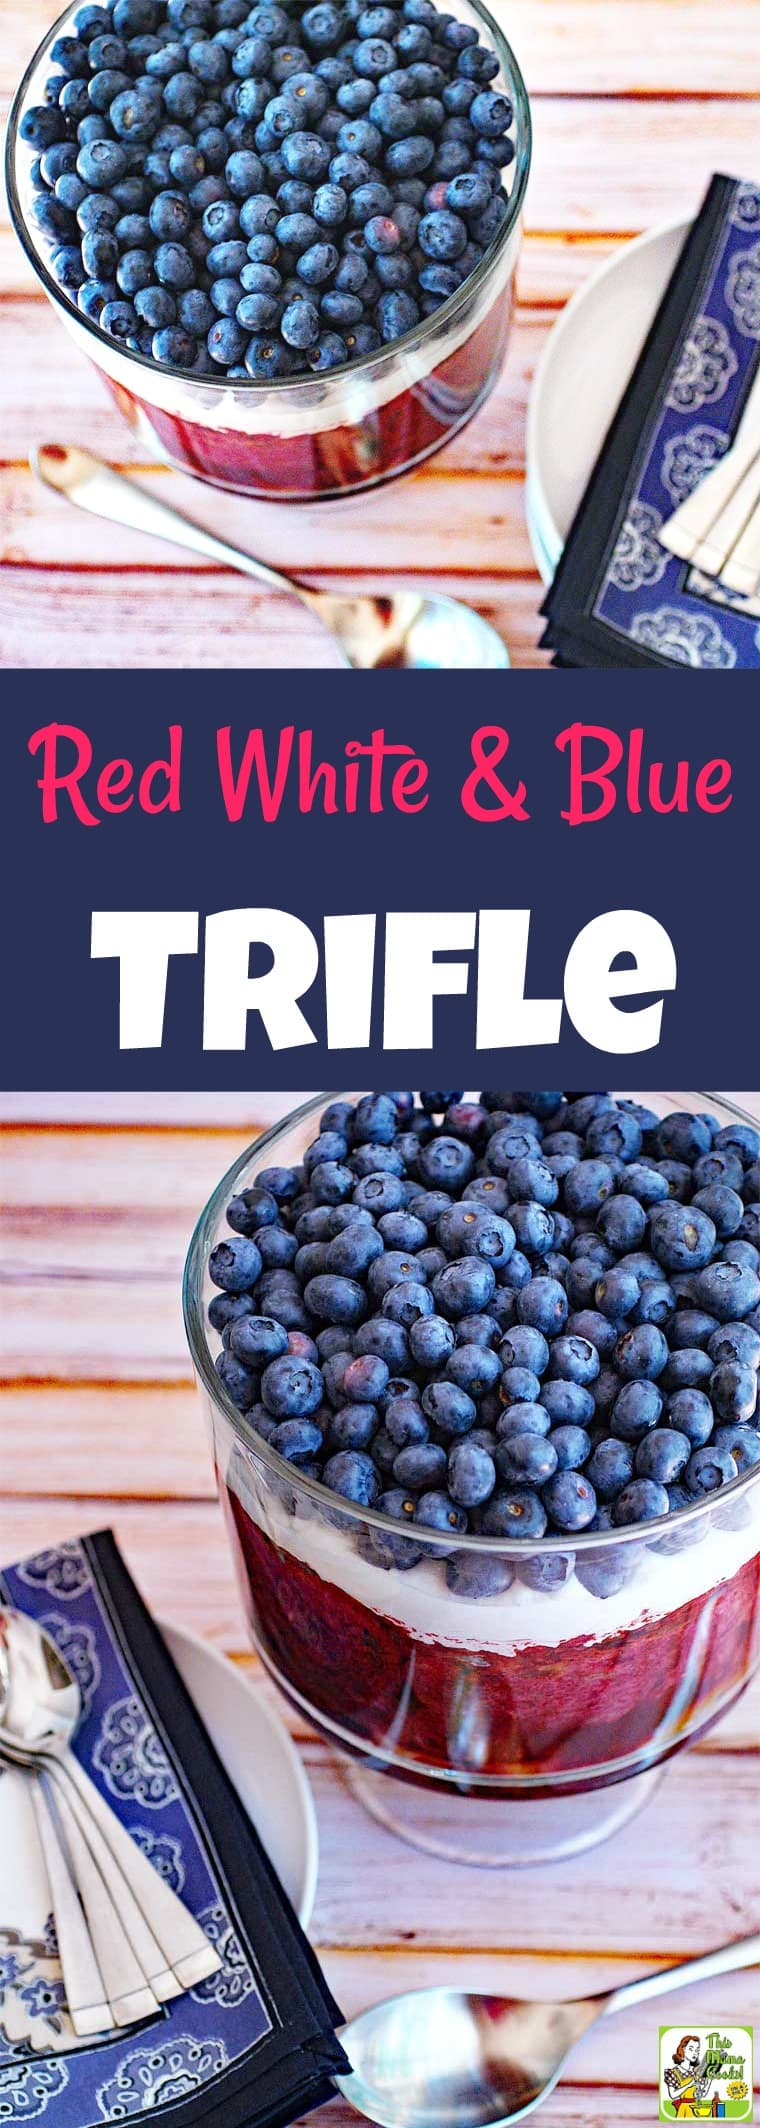 Red White and Blue Trifle Recipe